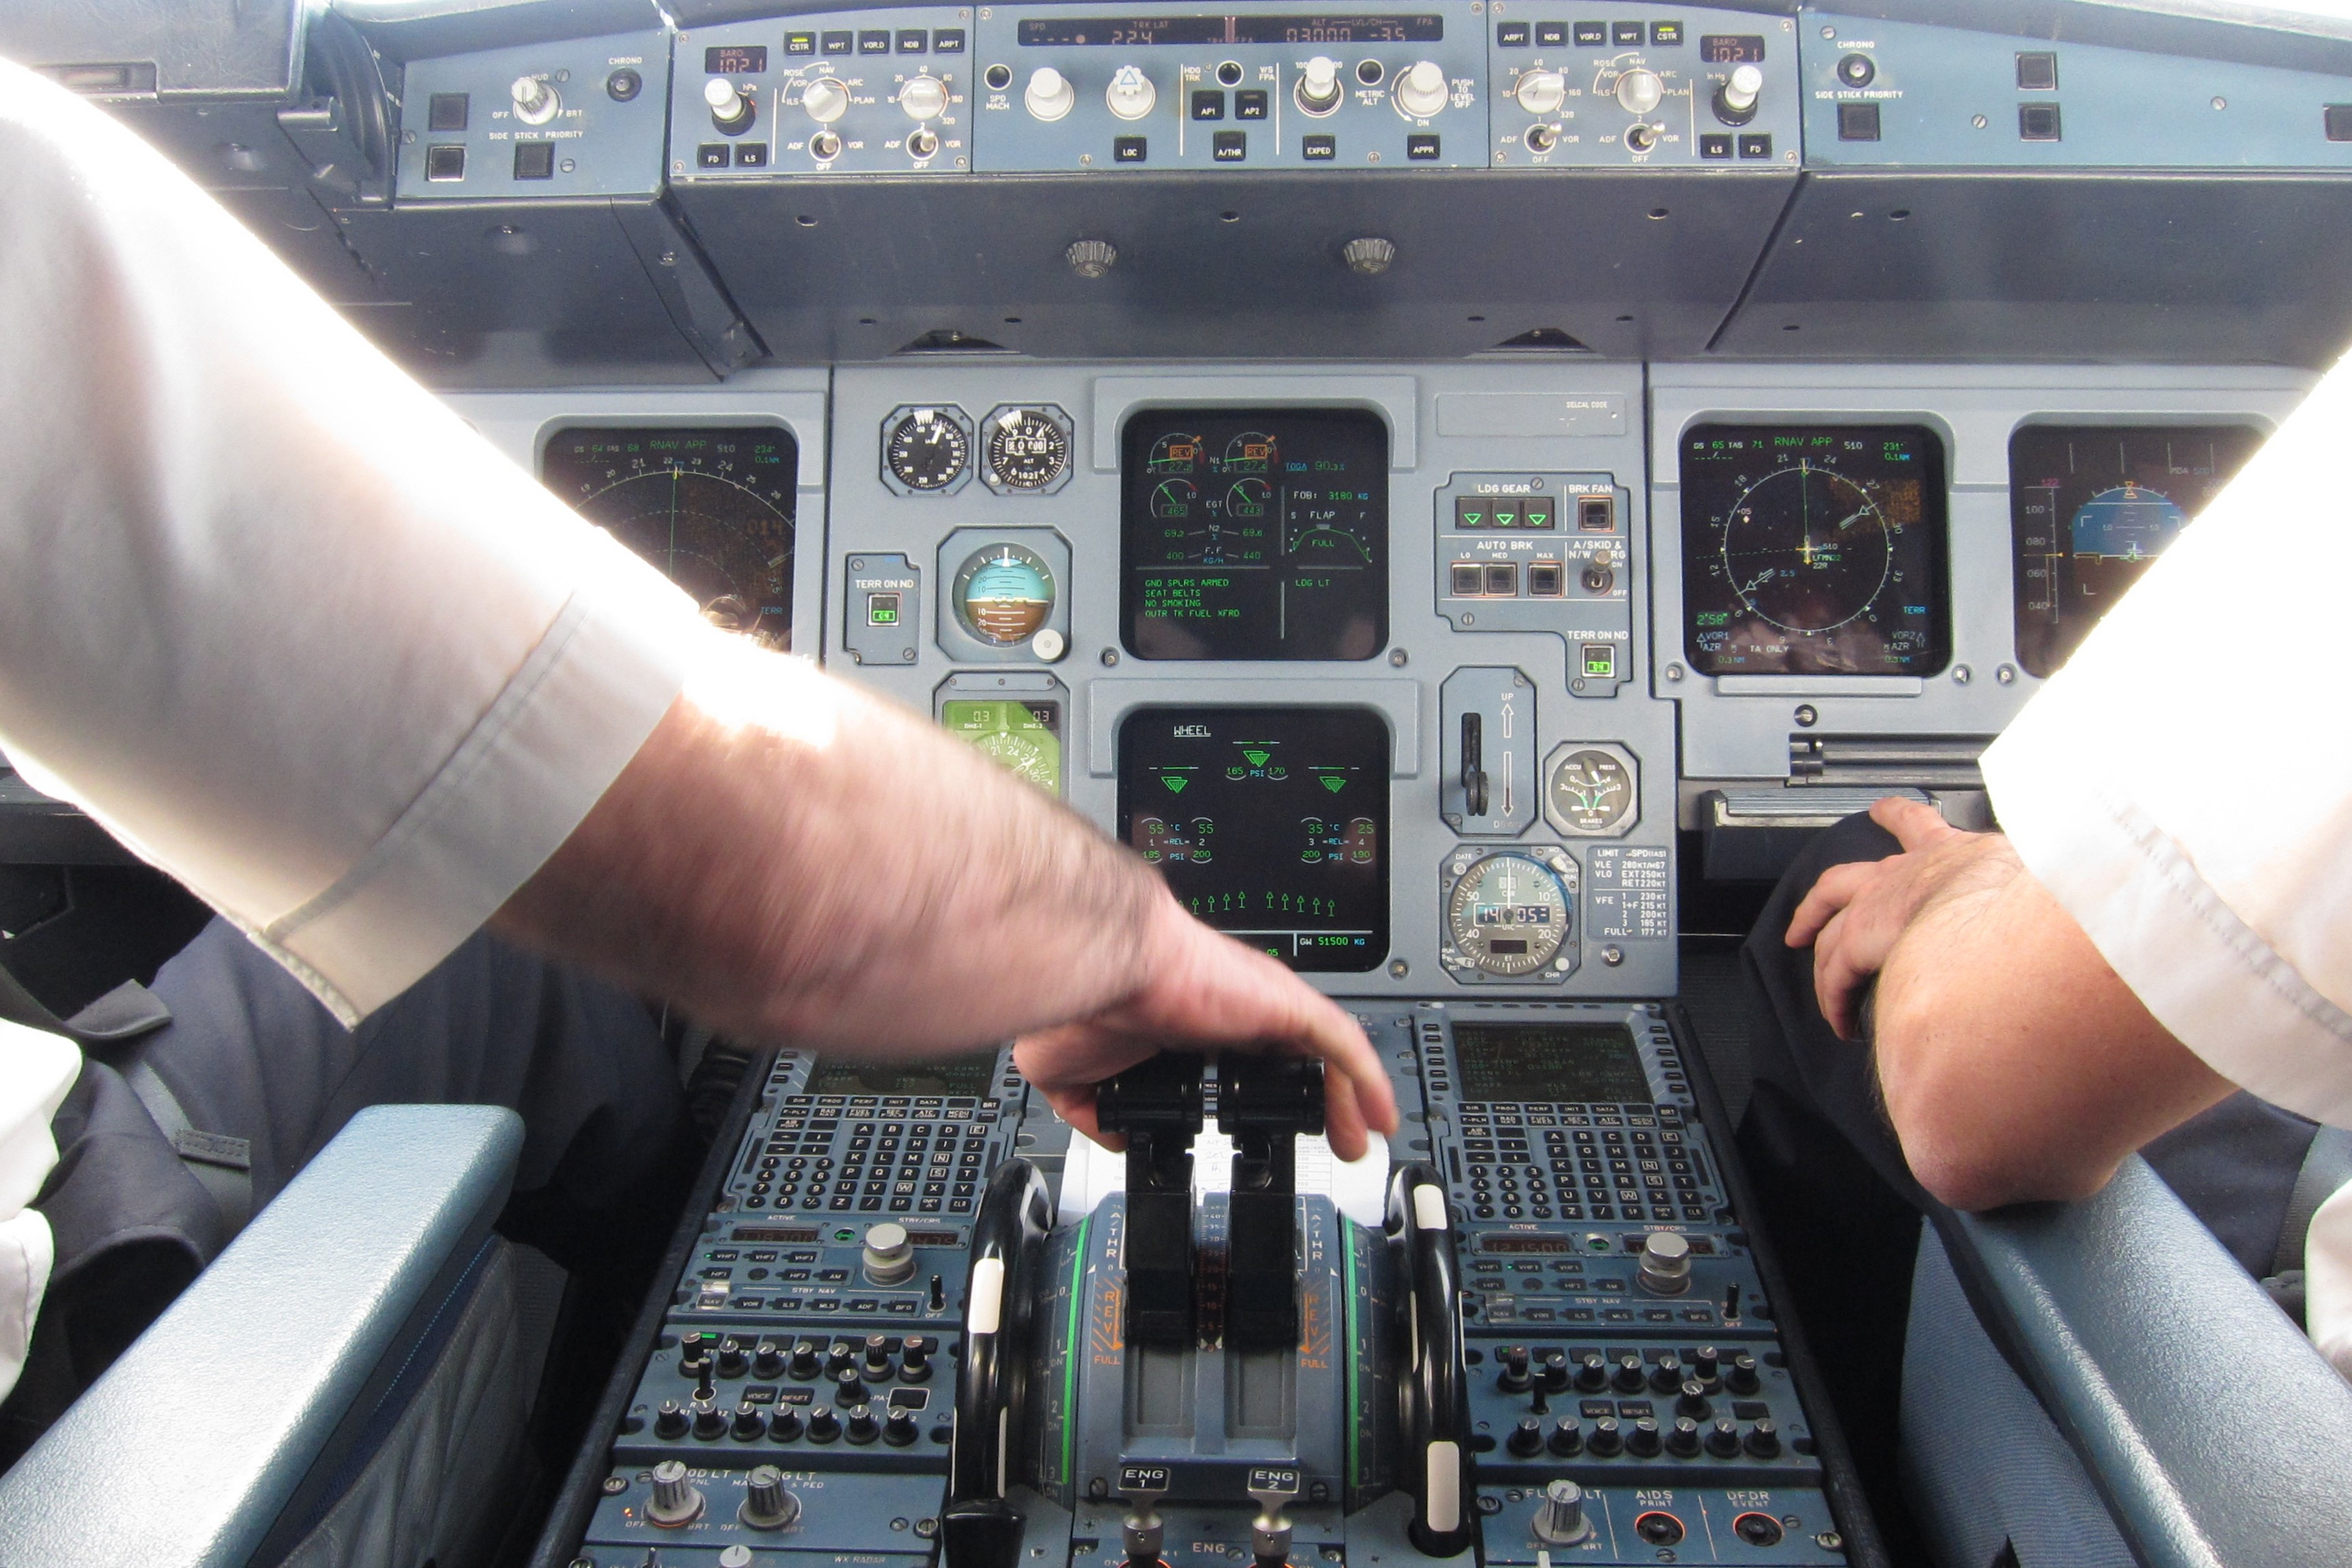 Description Deploying reversers after touchdown in A320 cockpit.jpg